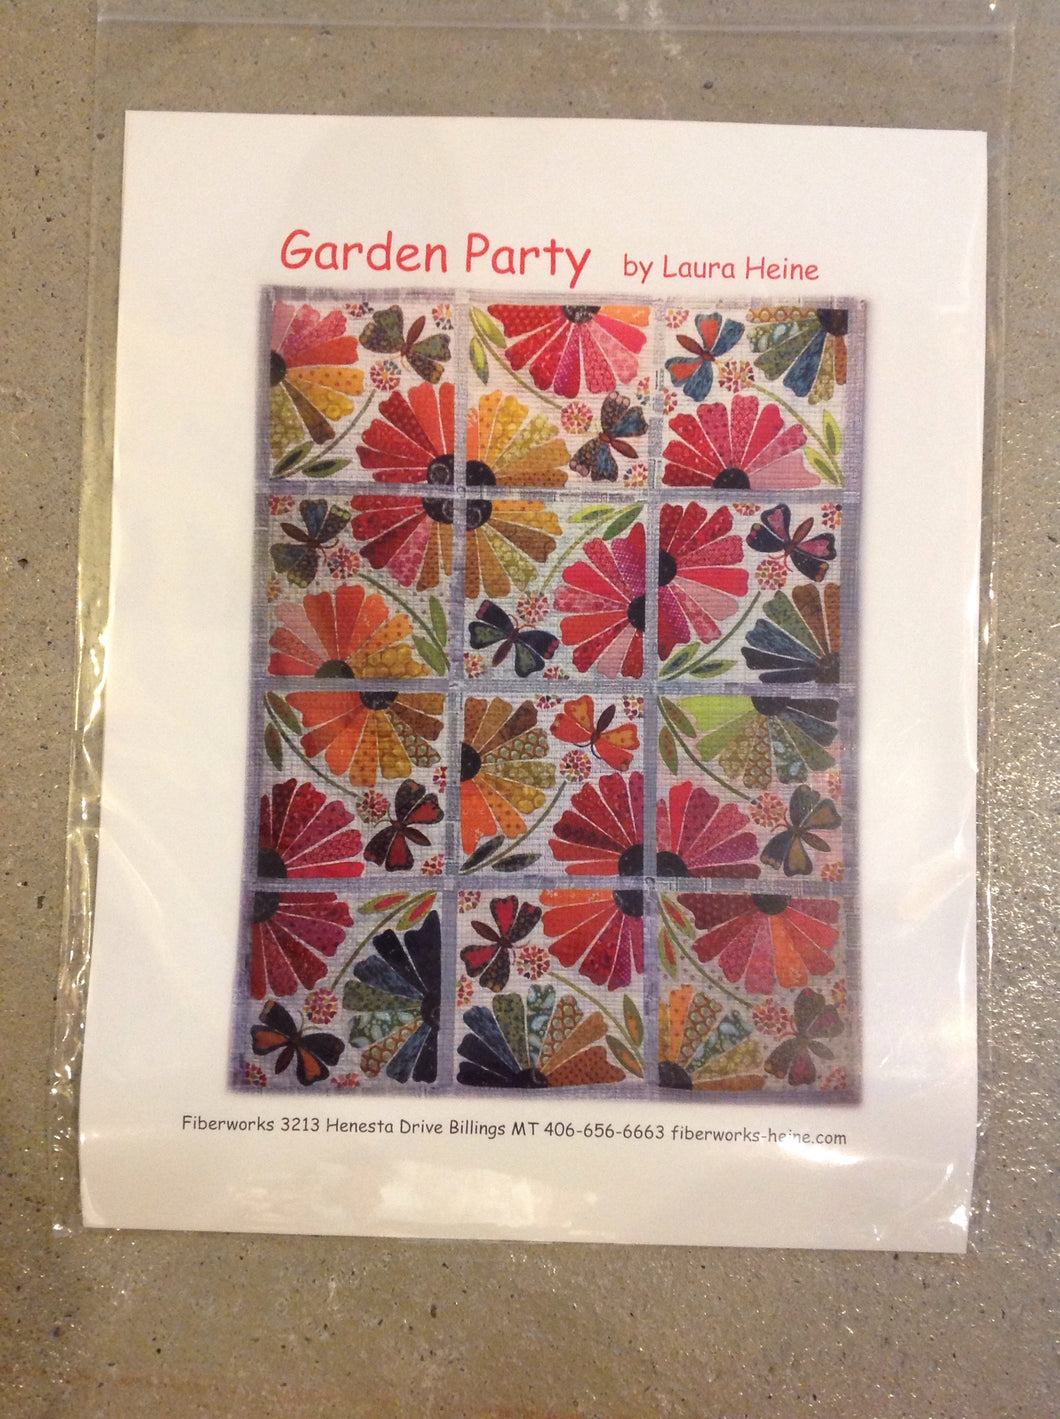 Garden Party by Laura Heine